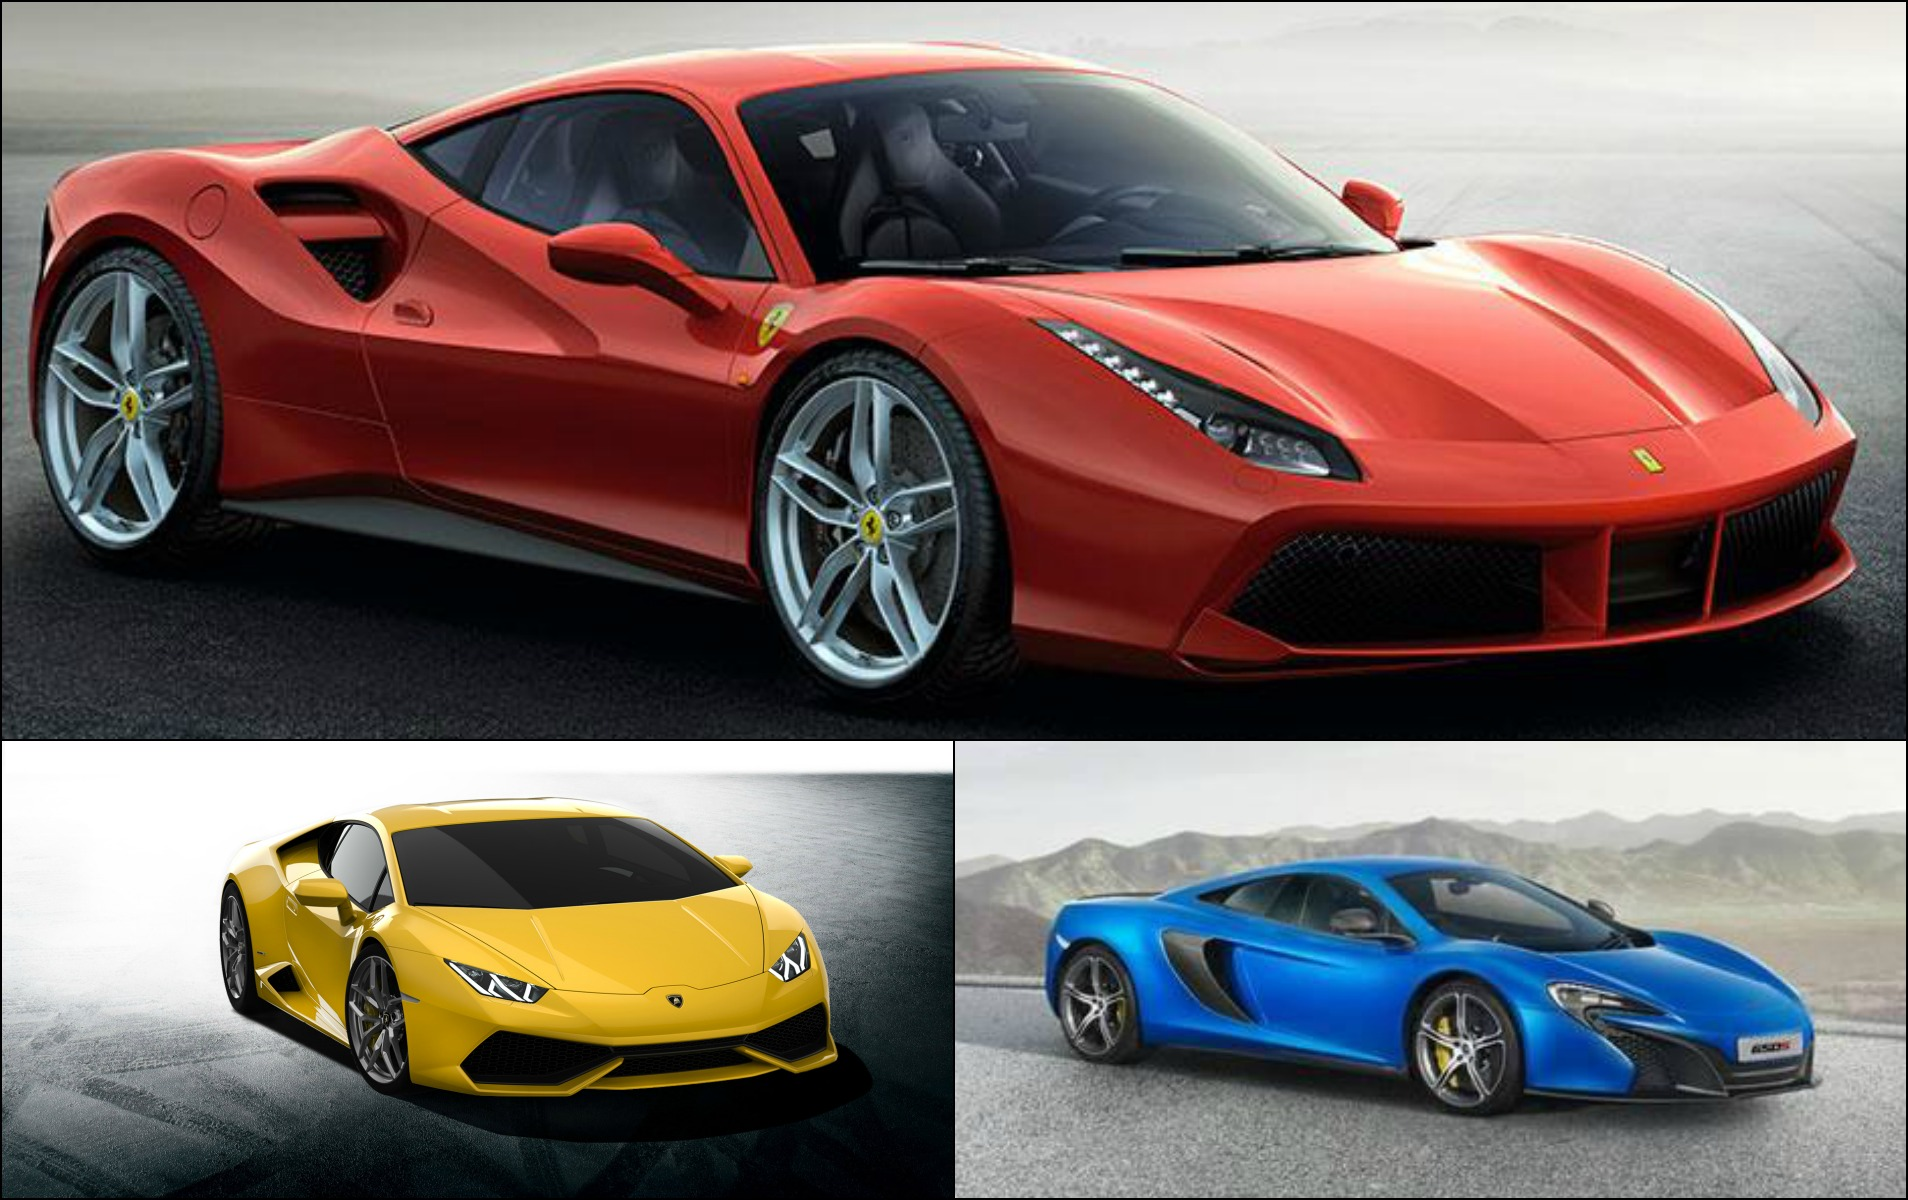 compara ie direct ferrari 488 gtb vs lamborghini. Black Bedroom Furniture Sets. Home Design Ideas